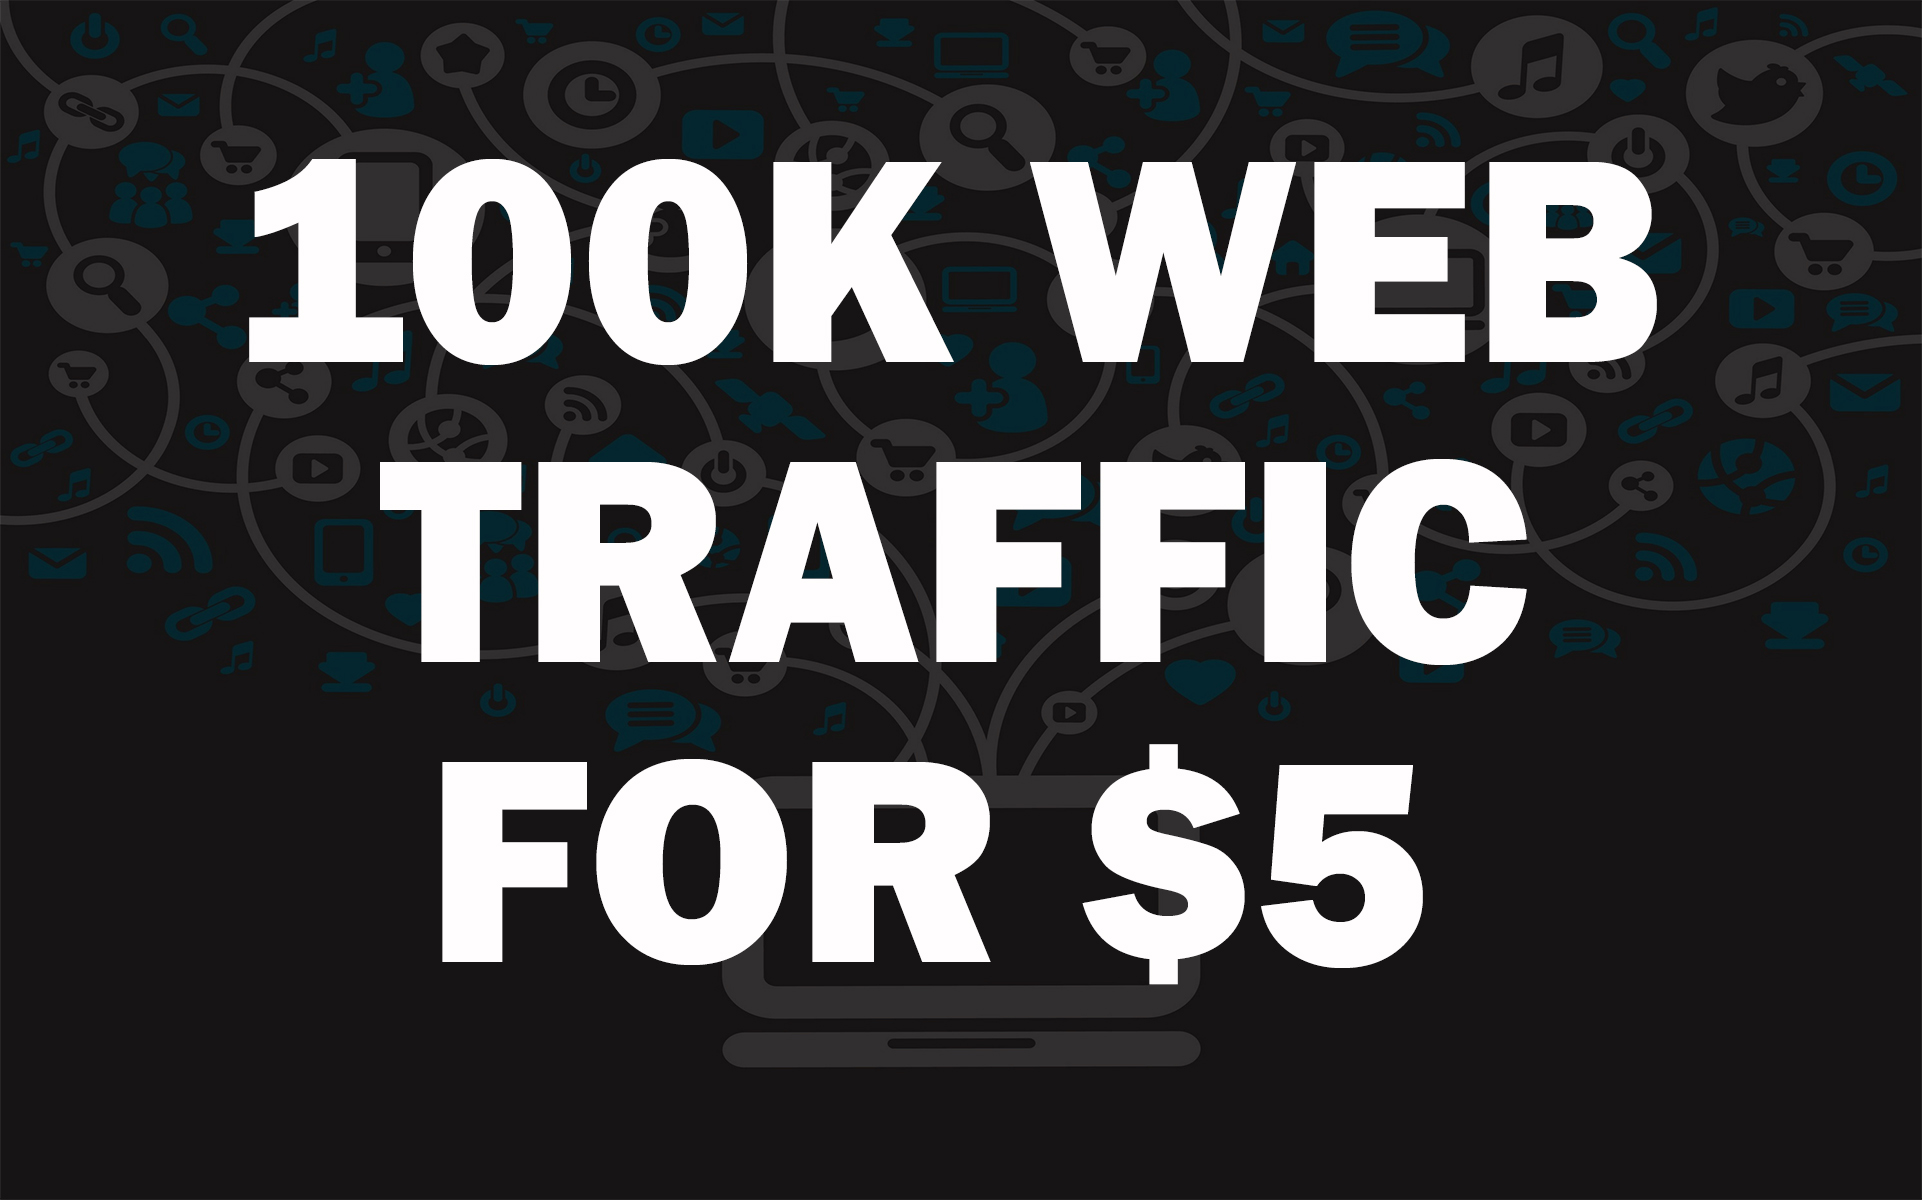 100,000 website traffic